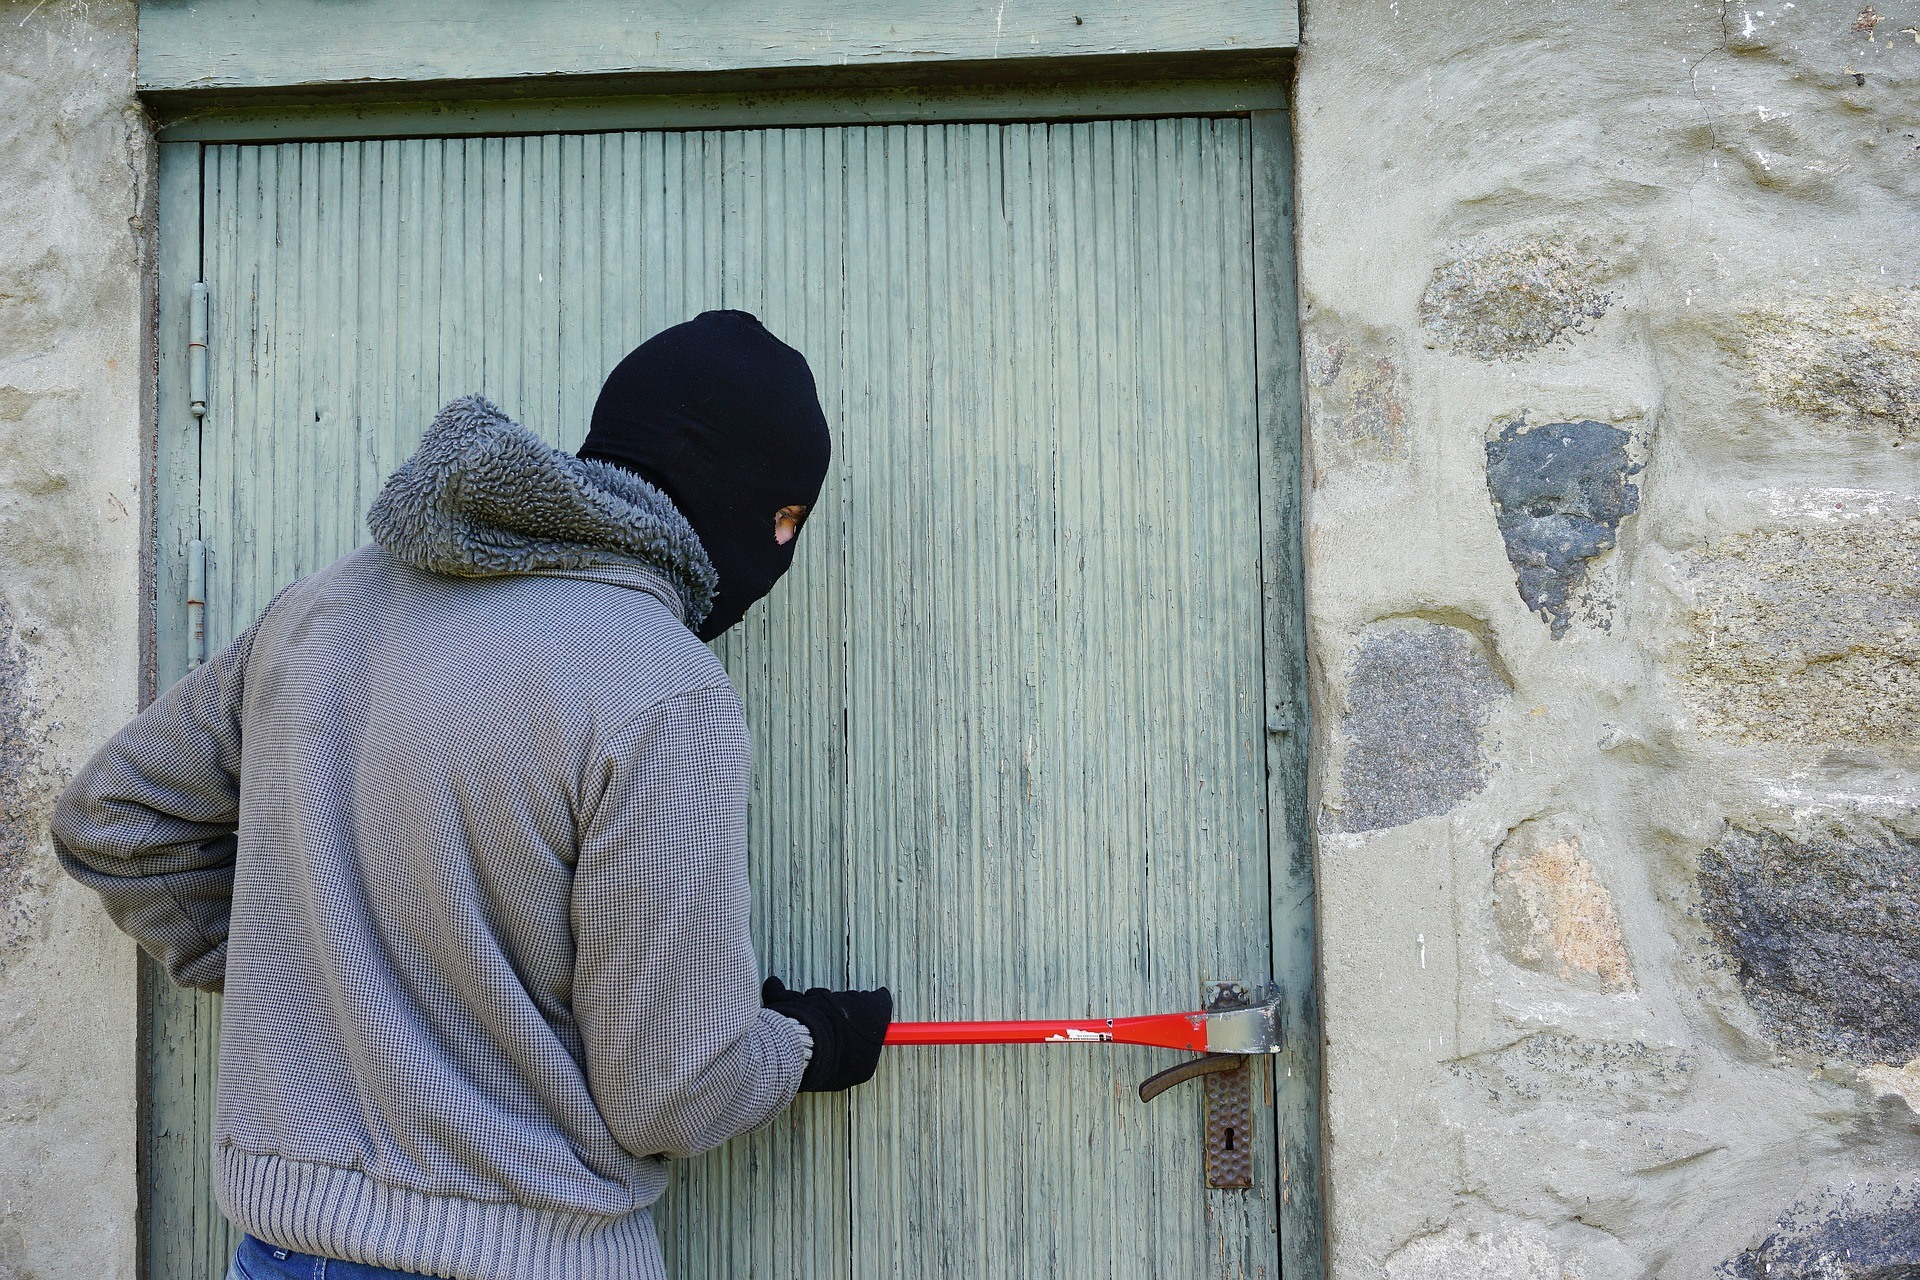 burglar, crime, break-in